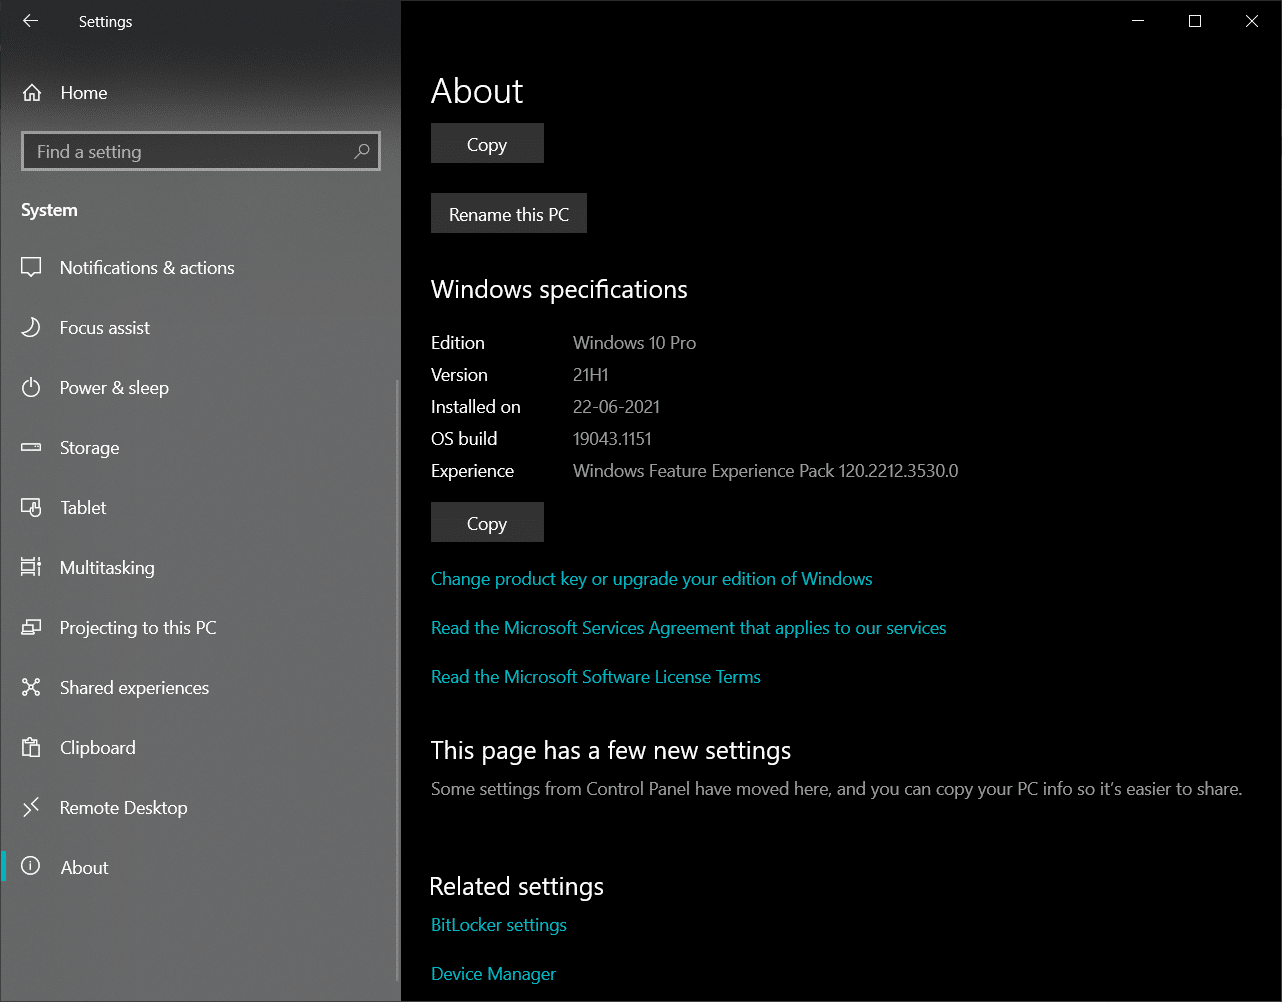 bluetooth stopped working windows 10